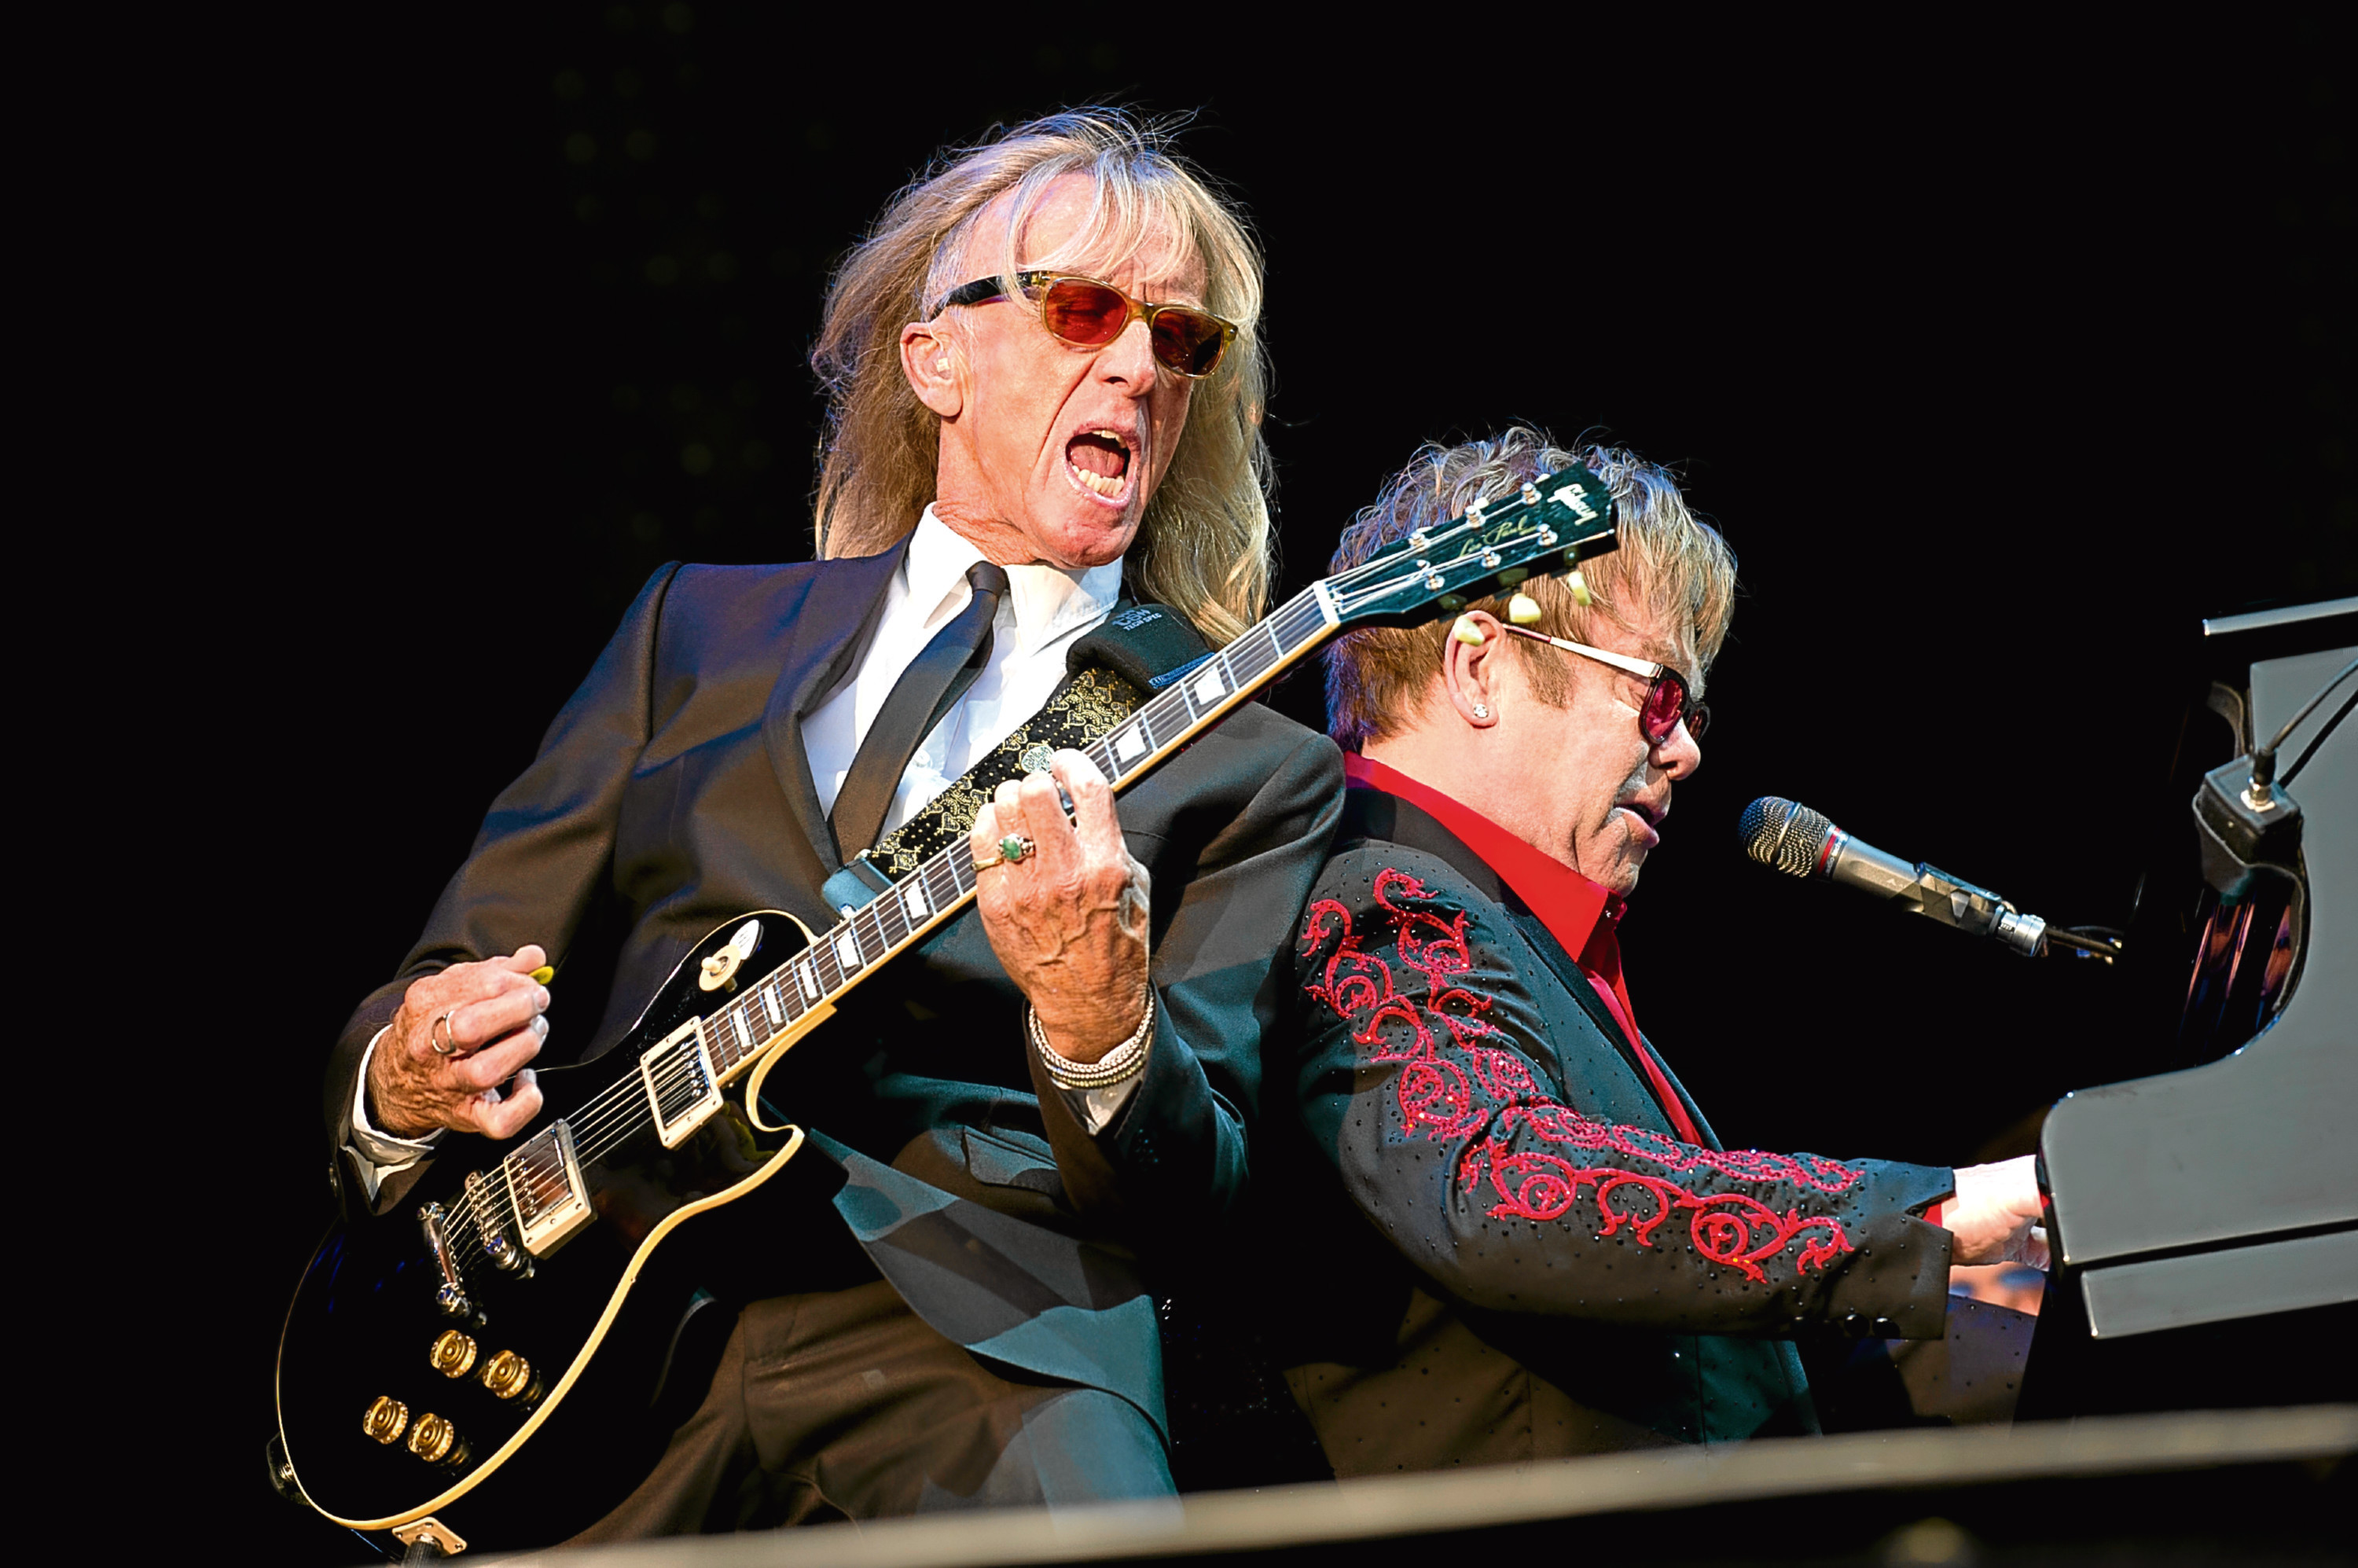 Scottish guitarist Davey Johnstone (L) performing with Elton John (Emily Wabitsch / DPA/PA Images)